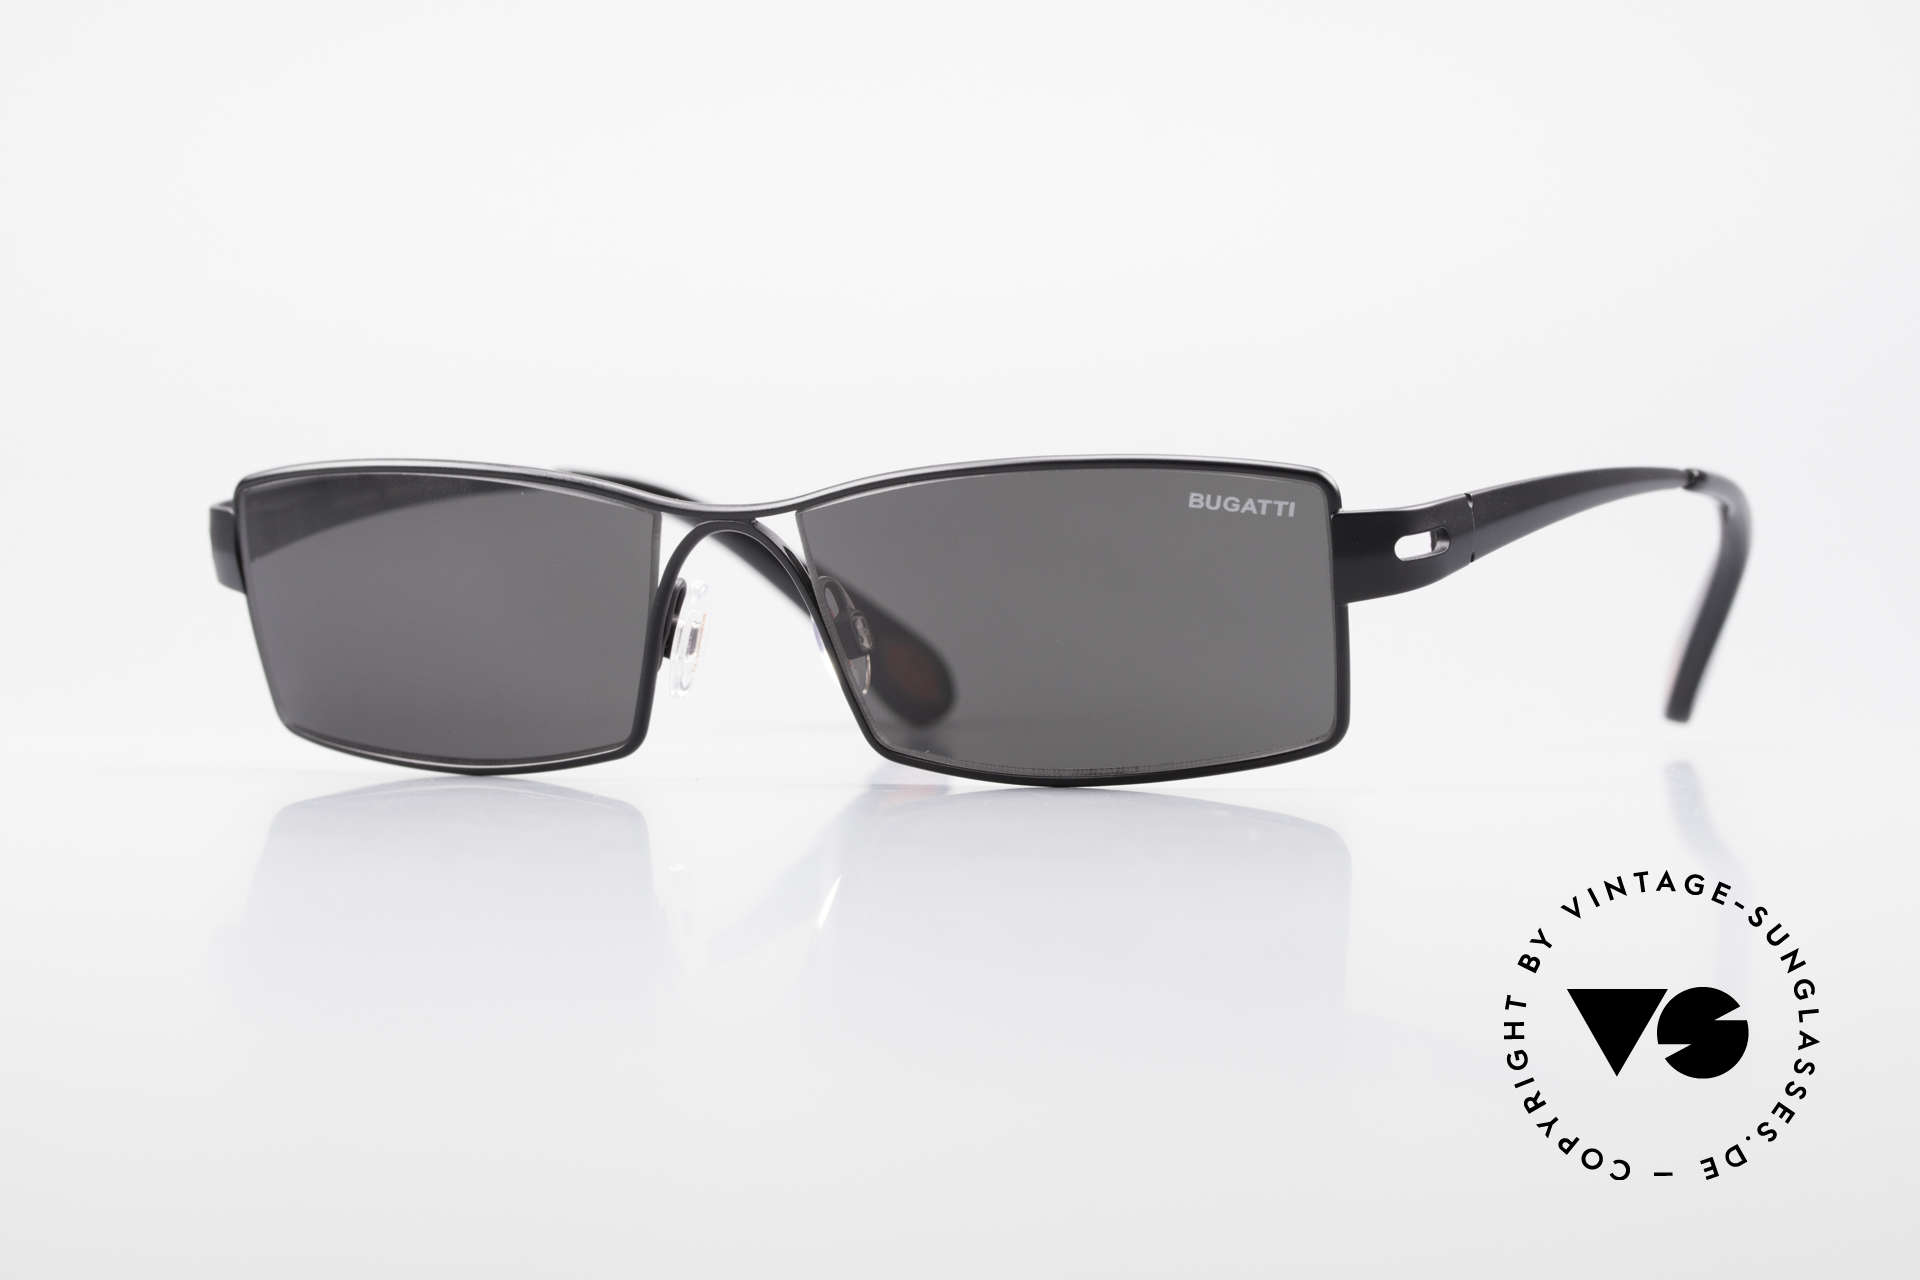 Bugatti 499 Rare Designer Sunglasses XL, striking HIGH-TECH sunglasses by BUGATTI, Made for Men